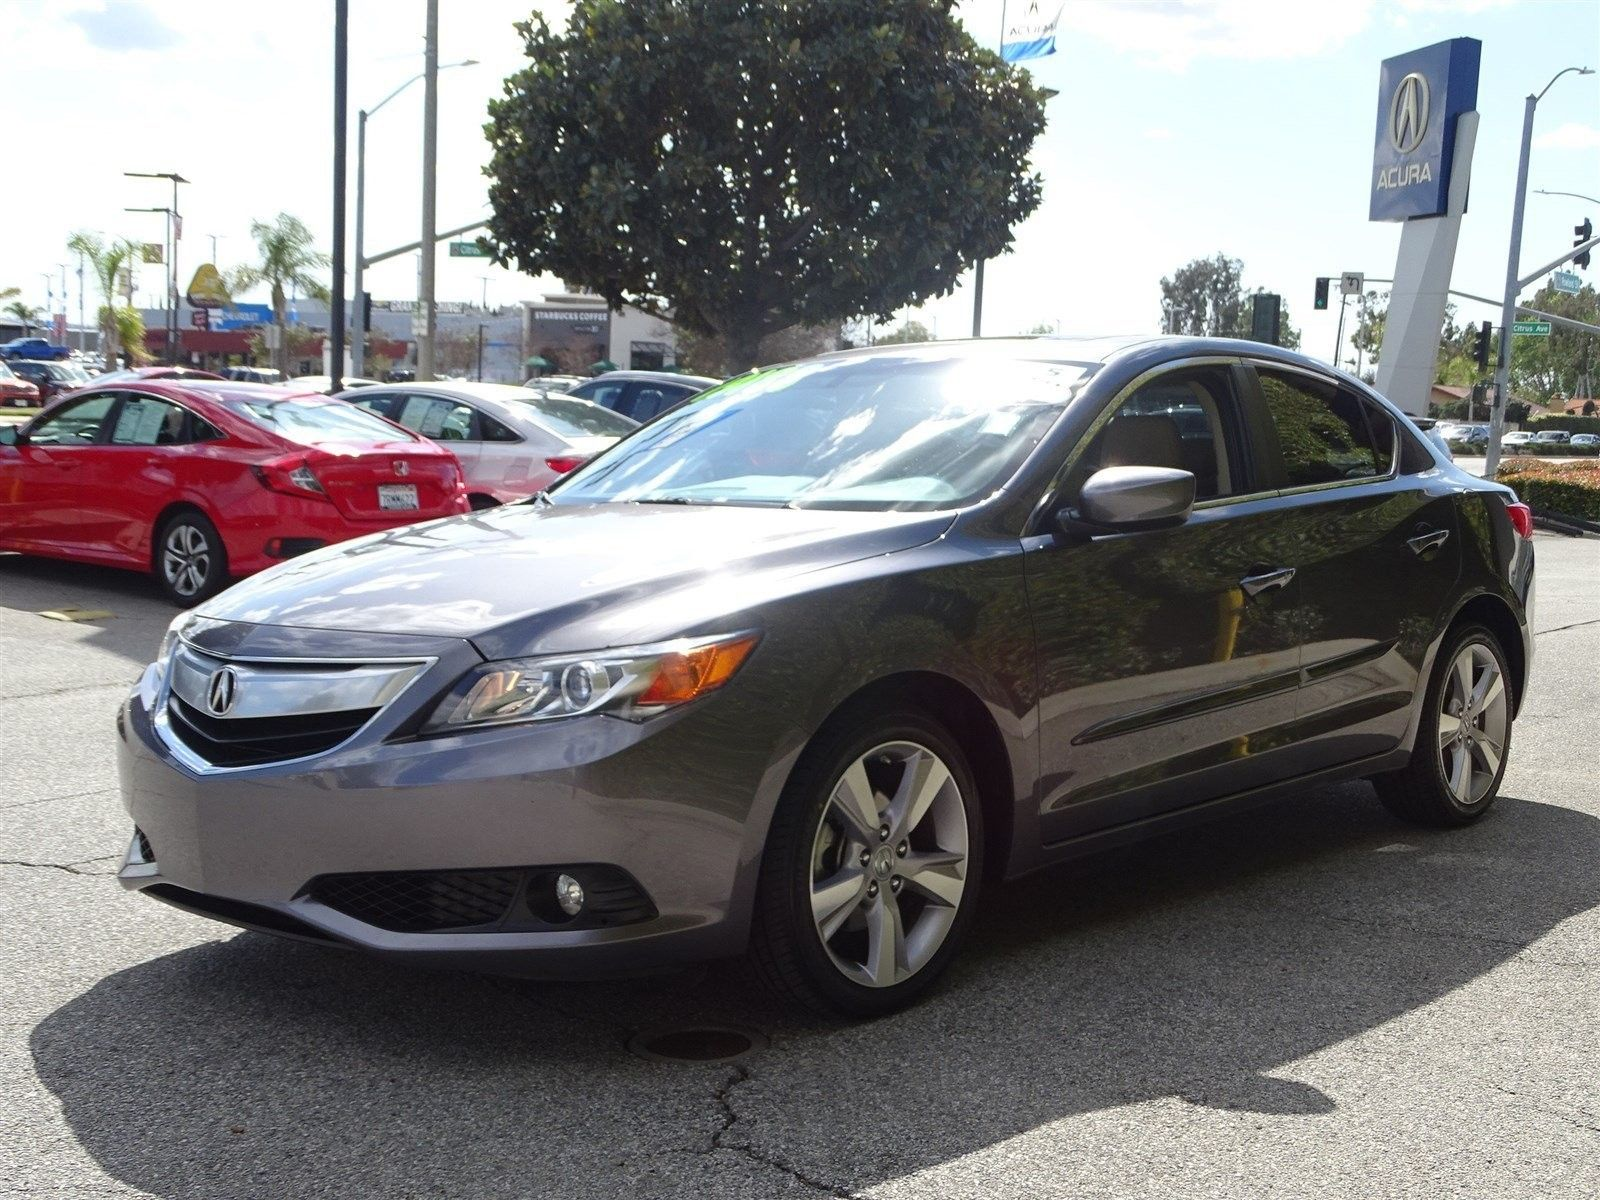 Inspirational Acura Cars For Sale Near Me Encouraged To Be Able To - Acuras for sale